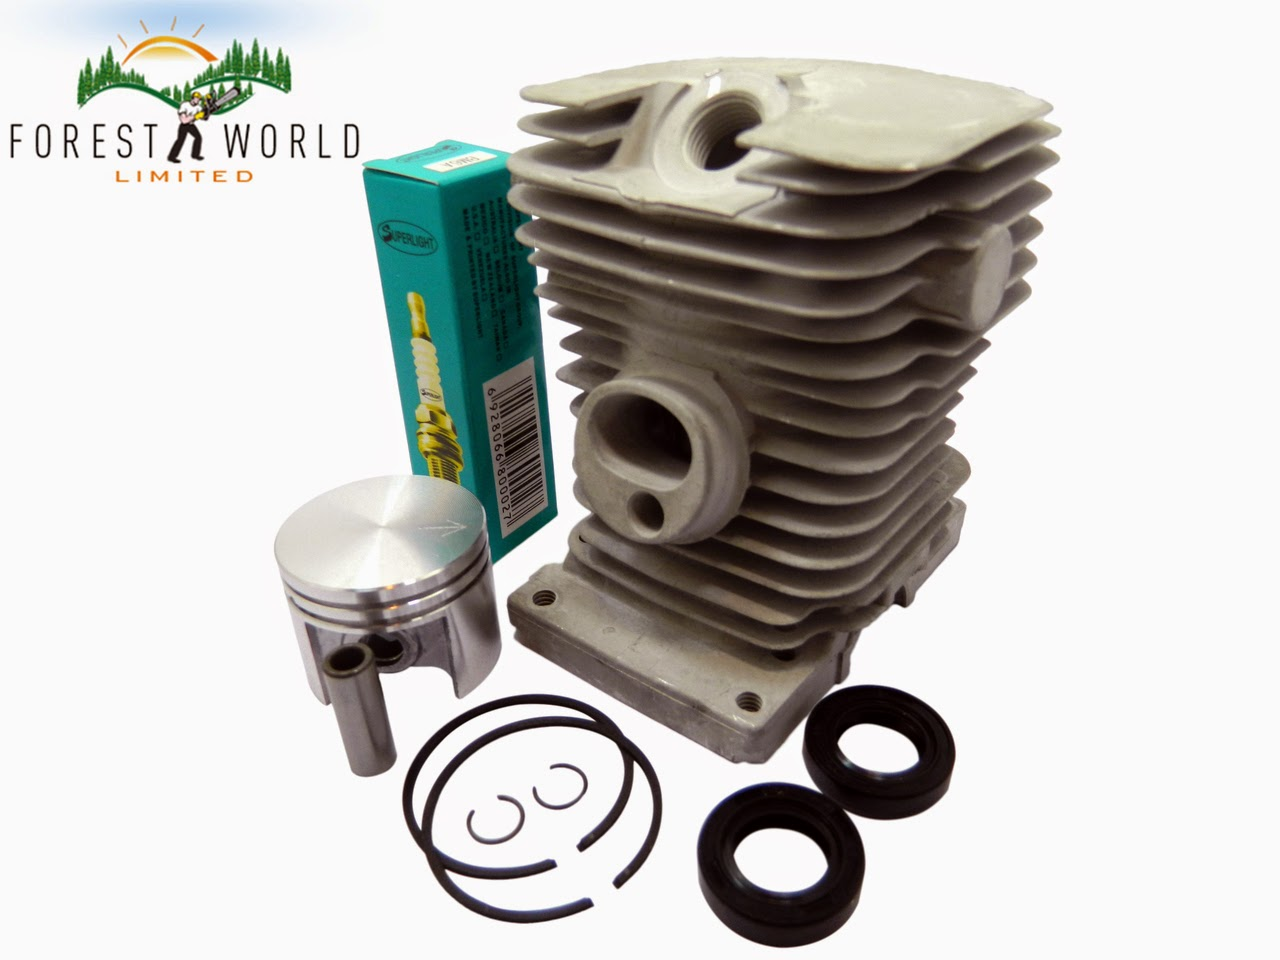 http://www.chainsawpartsonline.co.uk/stihl-ms-180-018-chainsaw-cylinder-piston-kit-38-mm-new-1130-020-1205/